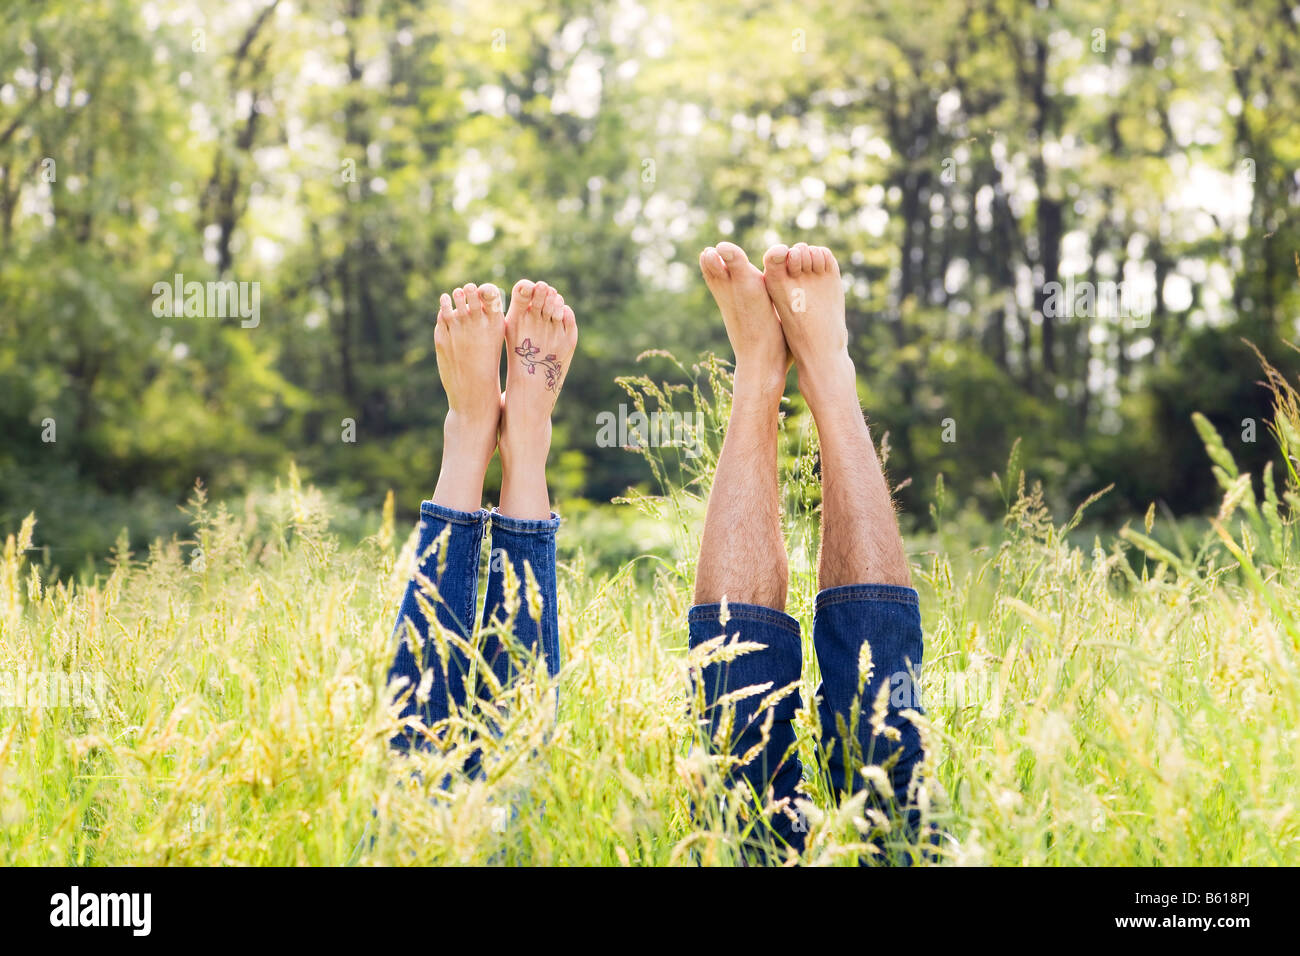 Couple lying in grass stretching their legs up - Stock Image